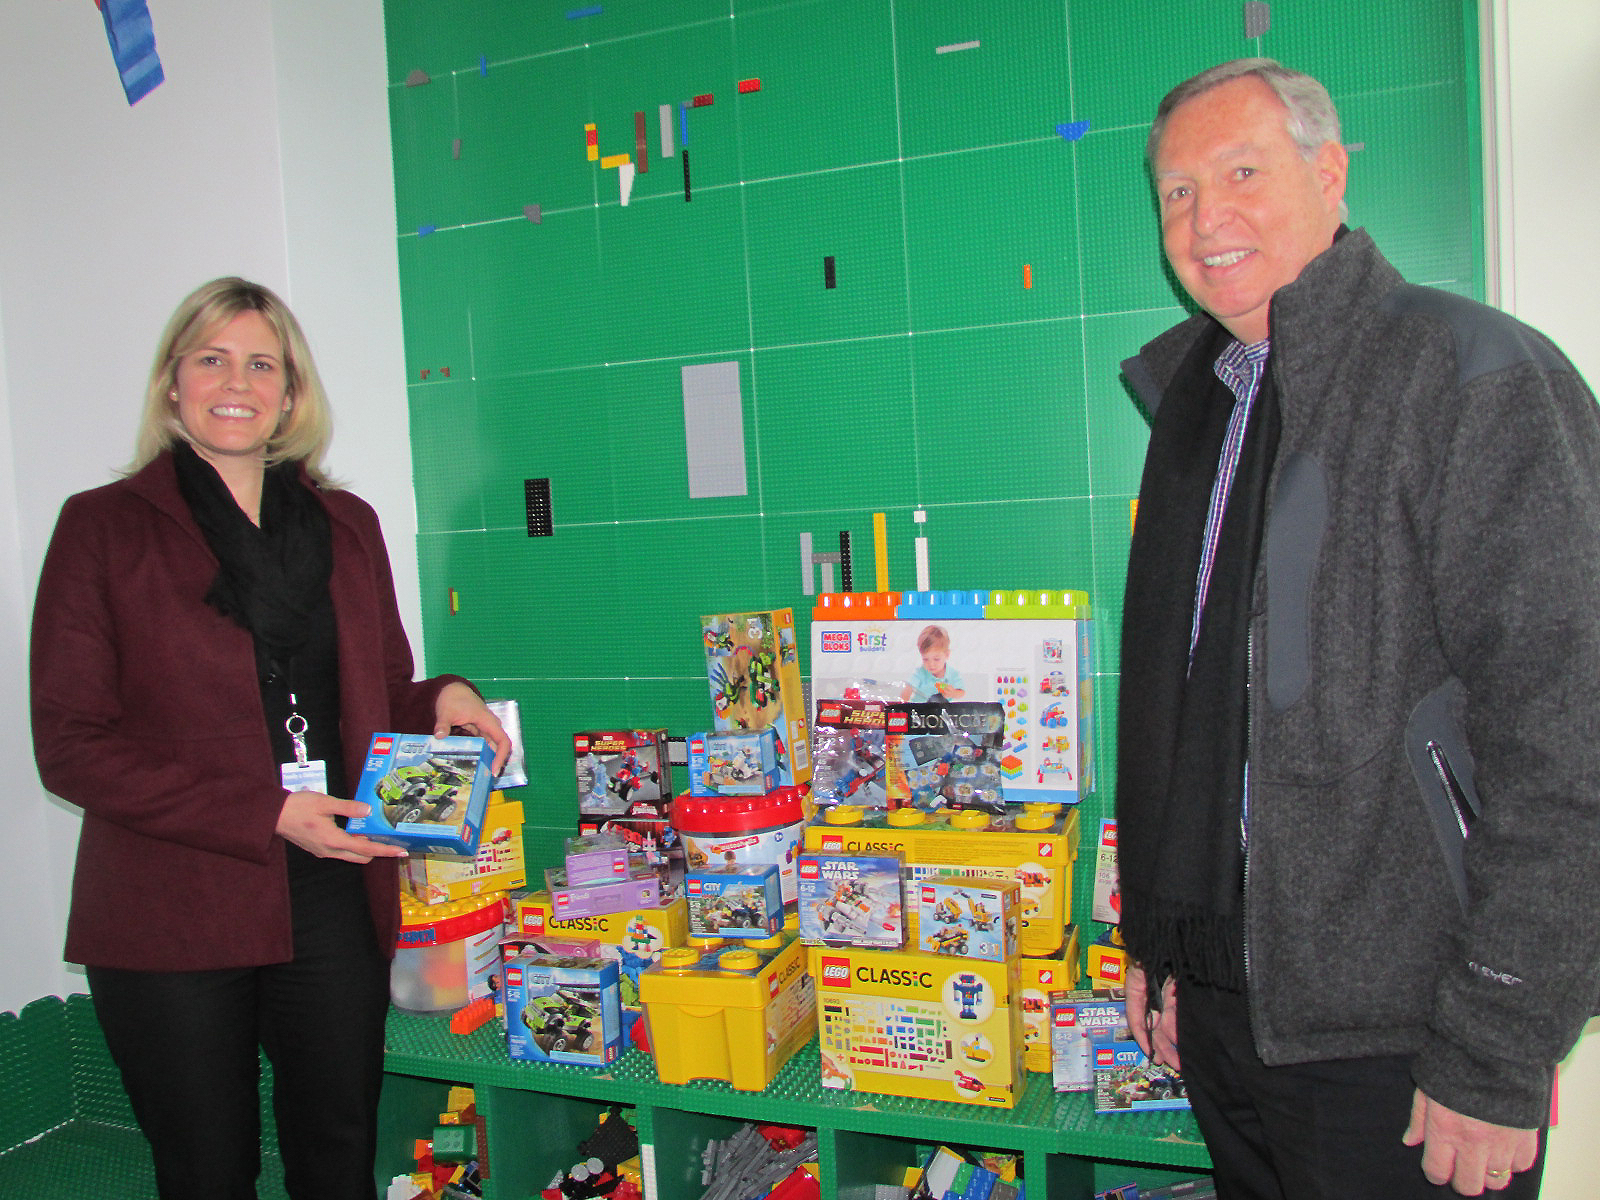 Apacet Senior Vice President Bob Fielding drops off two boxes of Legos donated by the staff of Ampacet